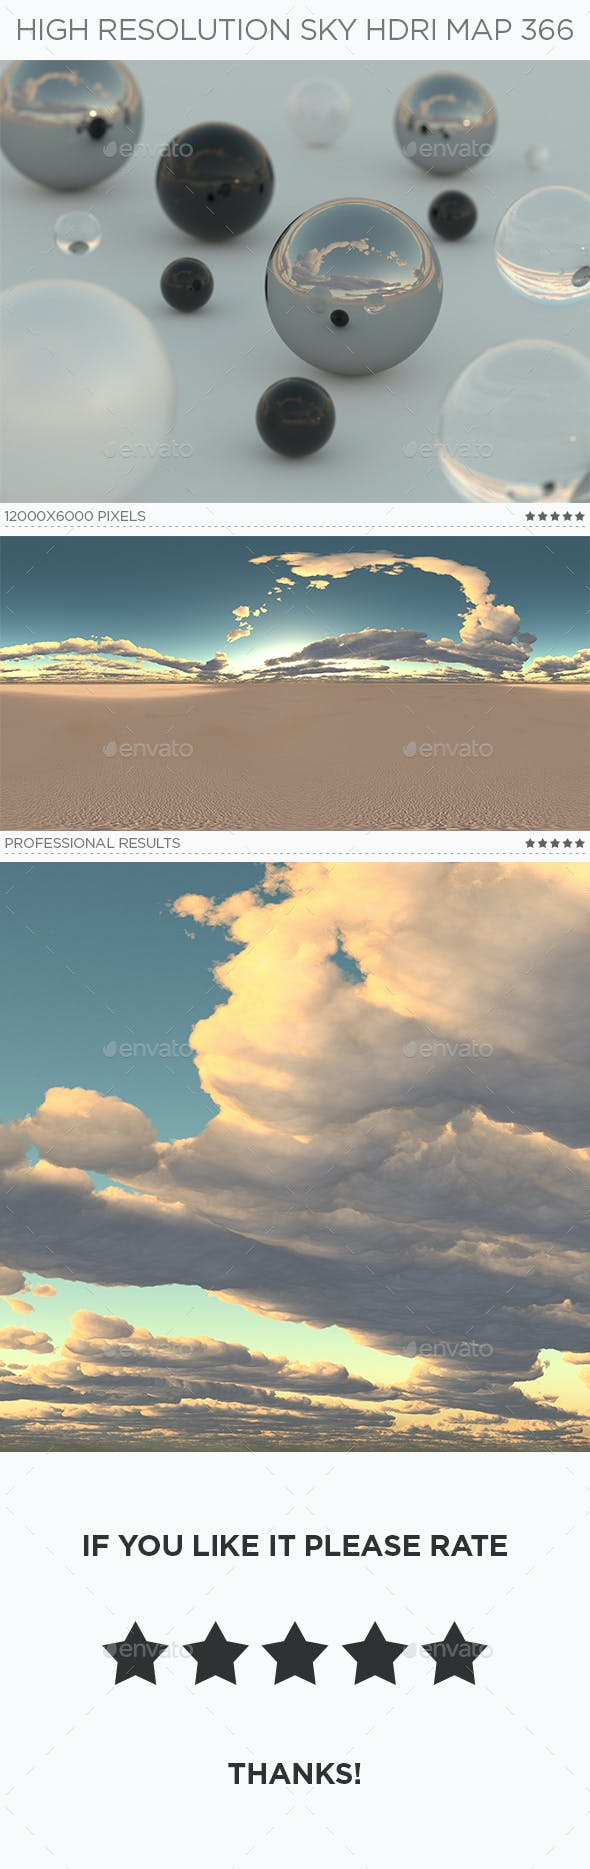 High Resolution Sky HDRi Map 366 - 3DOcean Item for Sale